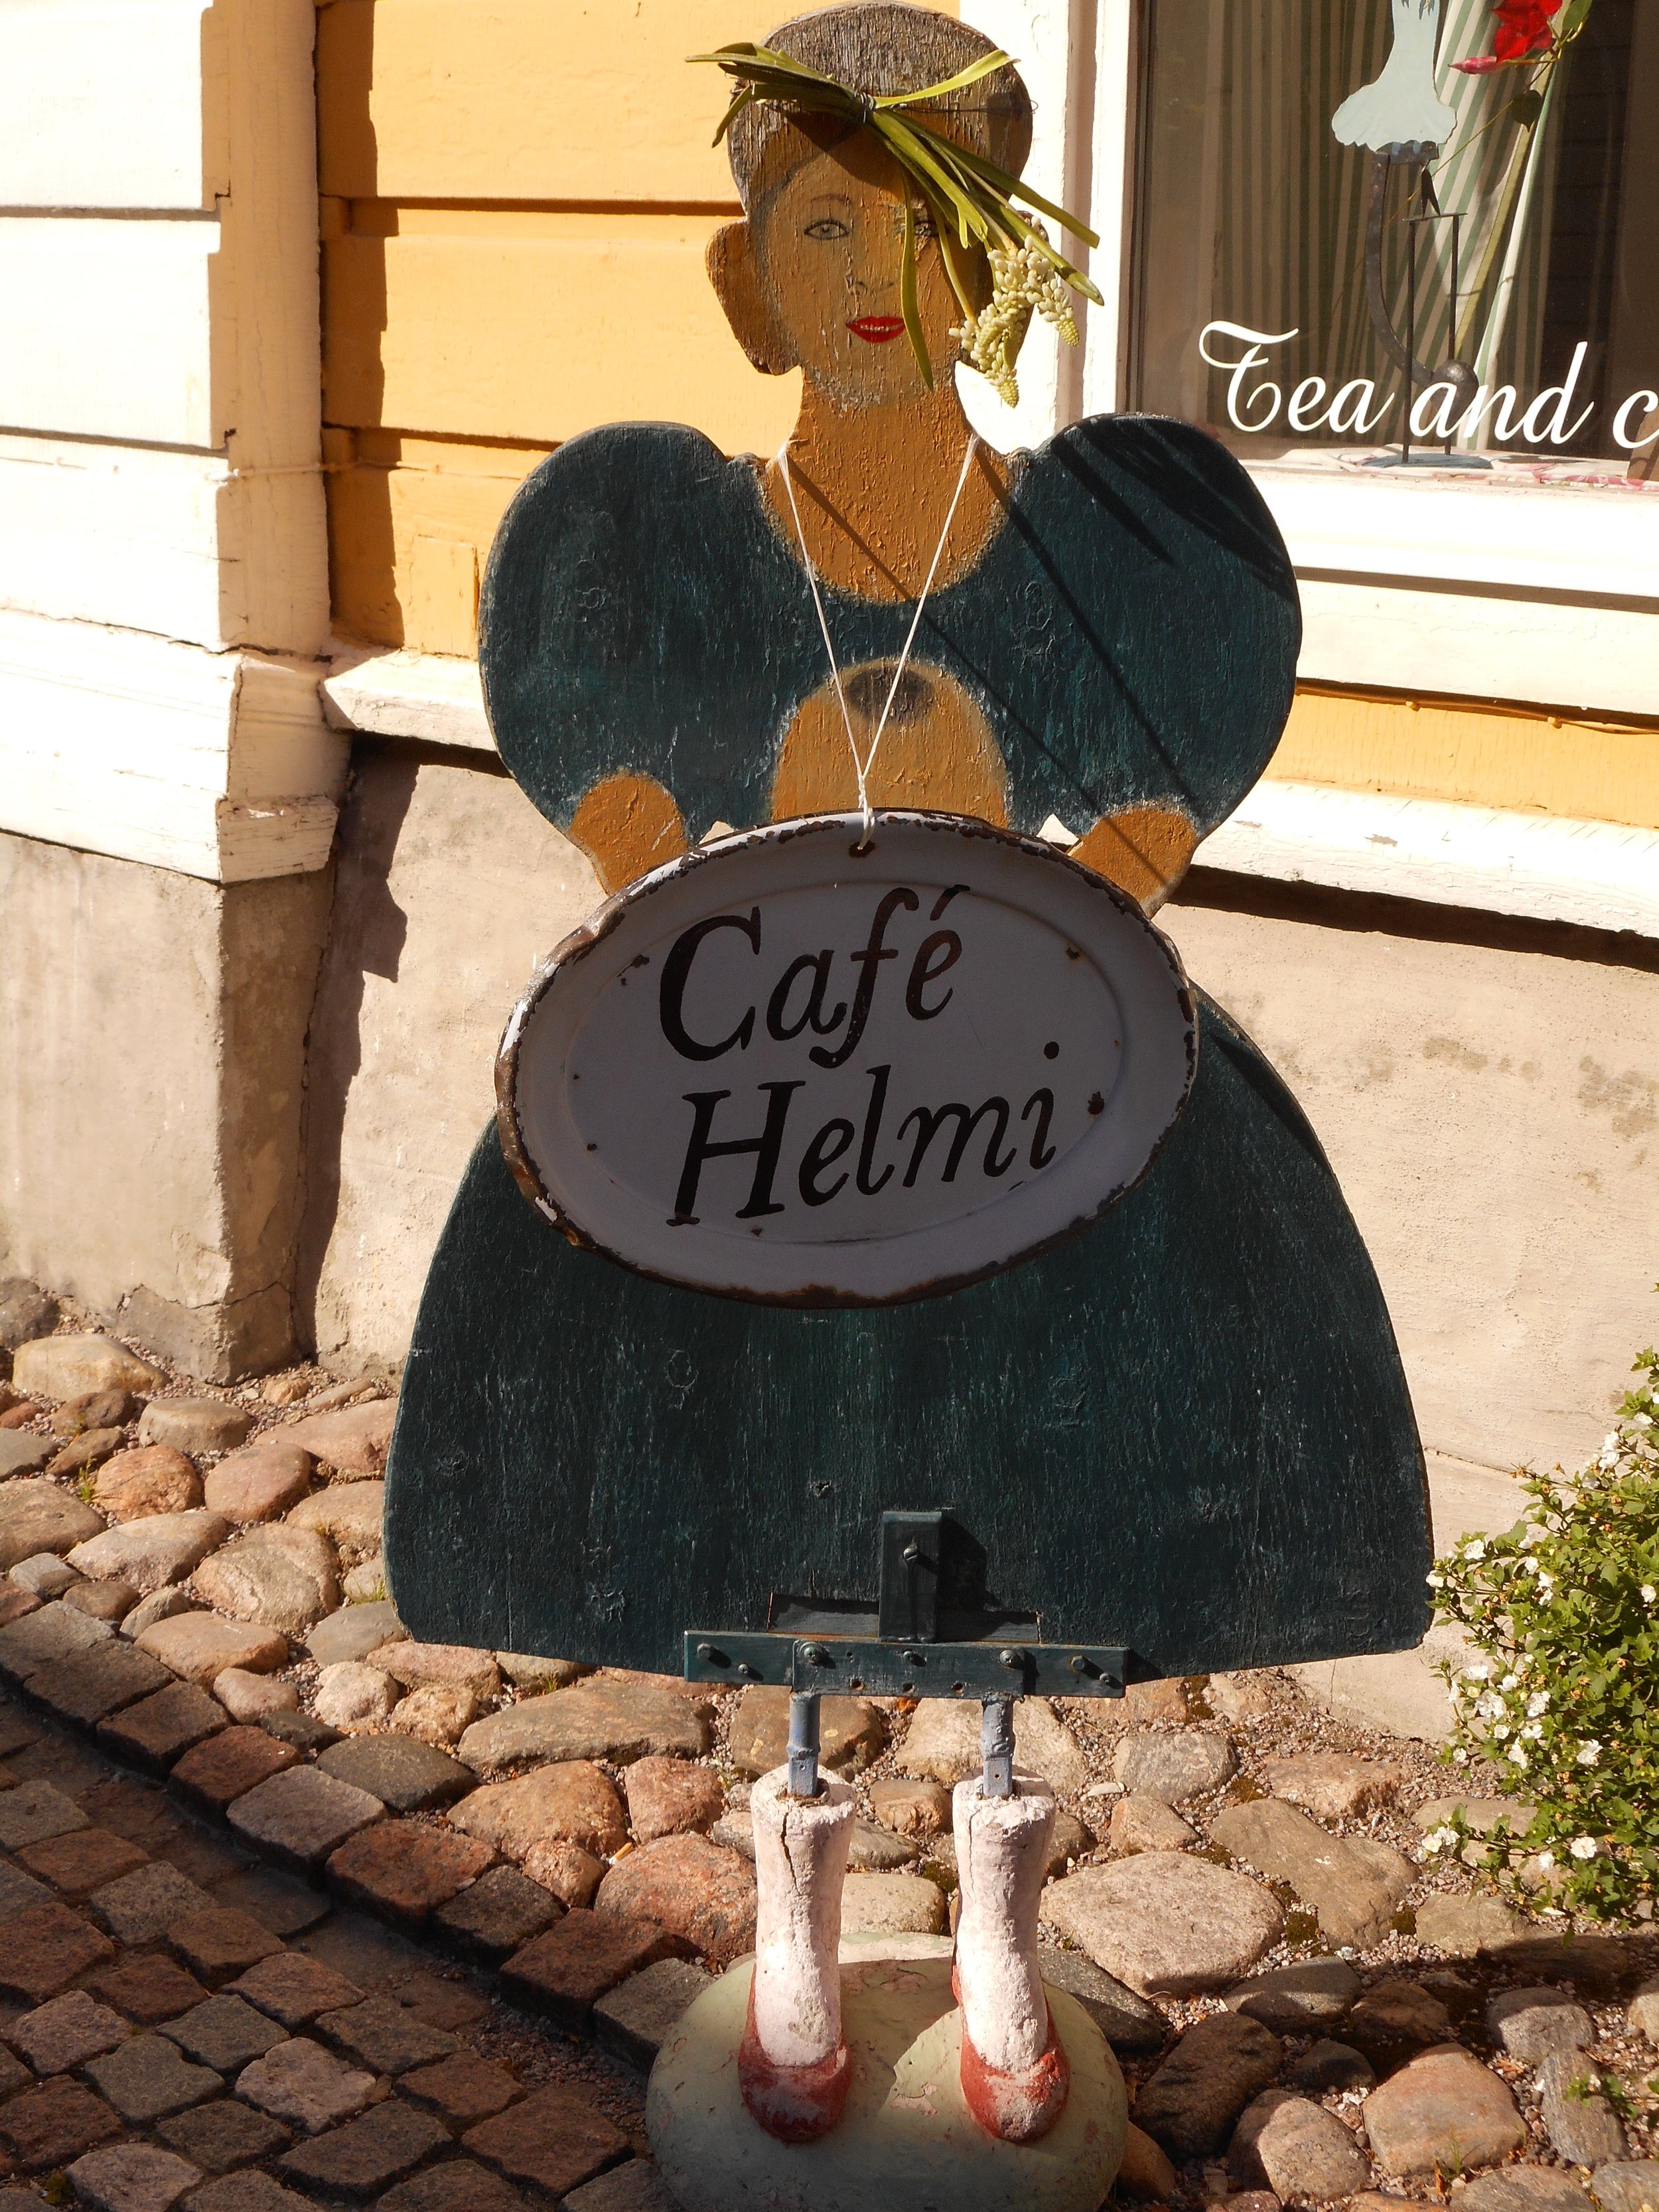 Charming cafe in Porvoo